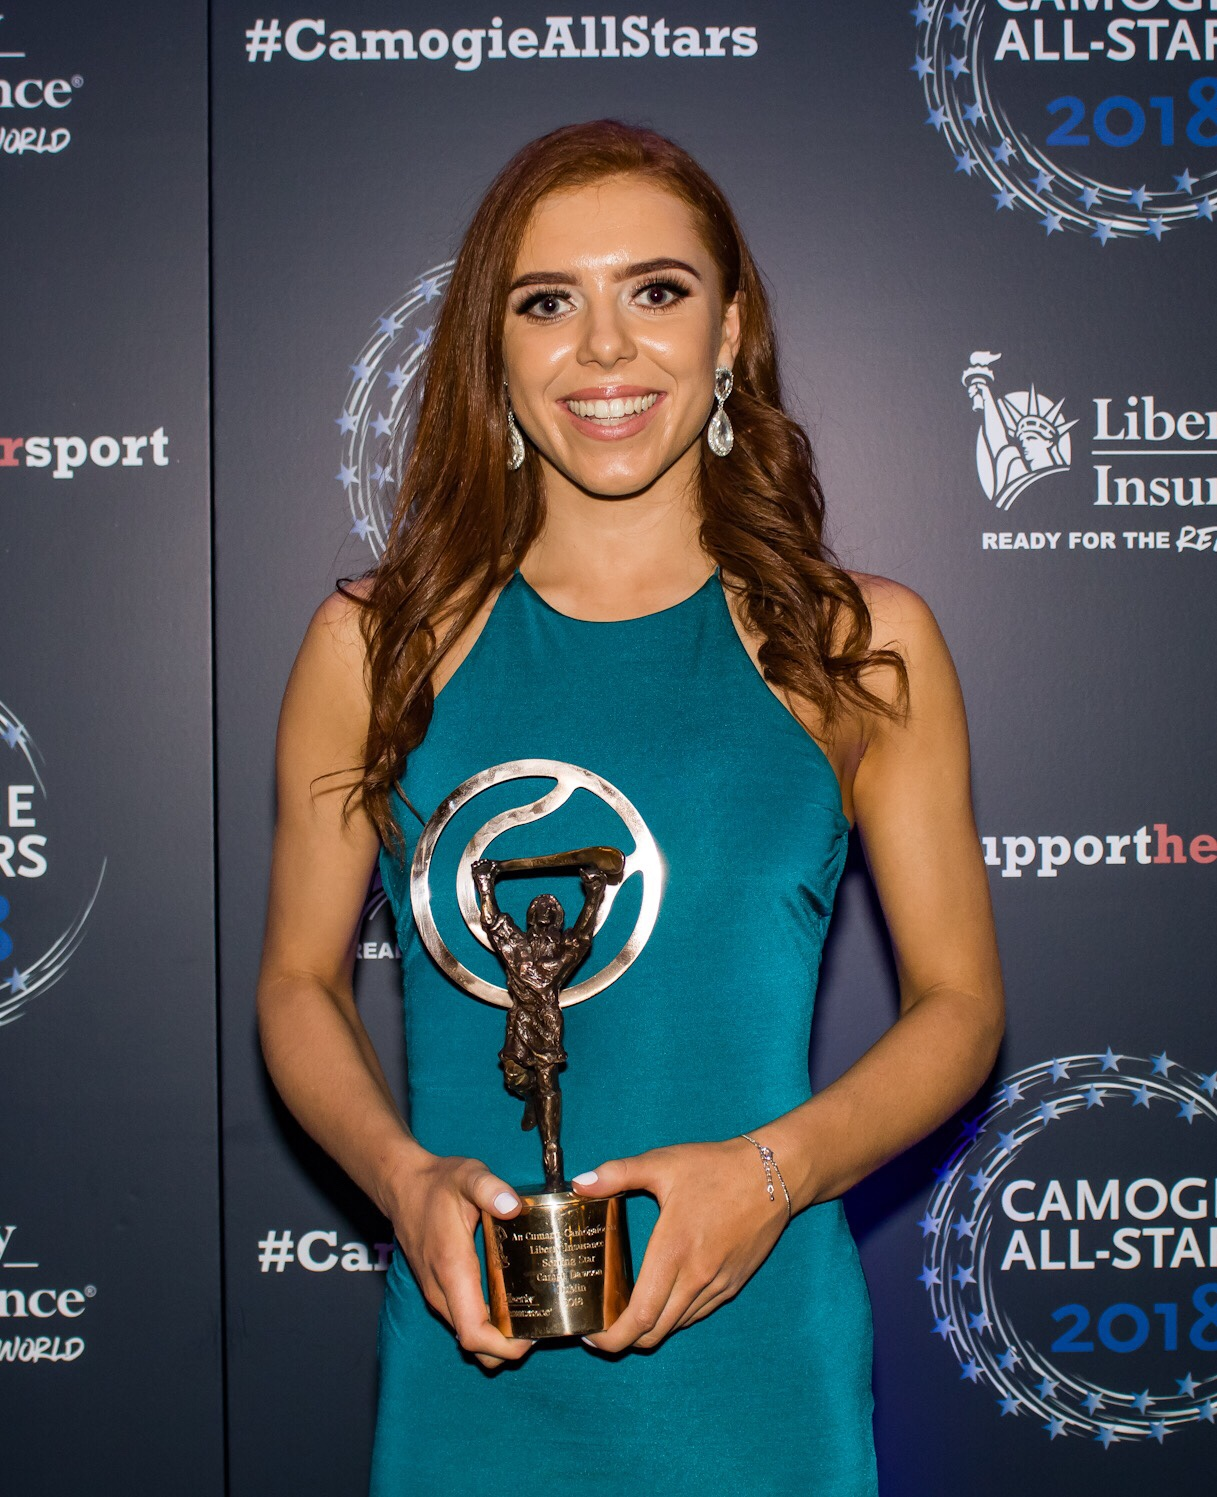 Dublin's Caragh Dawson With Her Soaring Stars Award At Last Nights Camogie All-Stars Awards In the Citywest Hotel